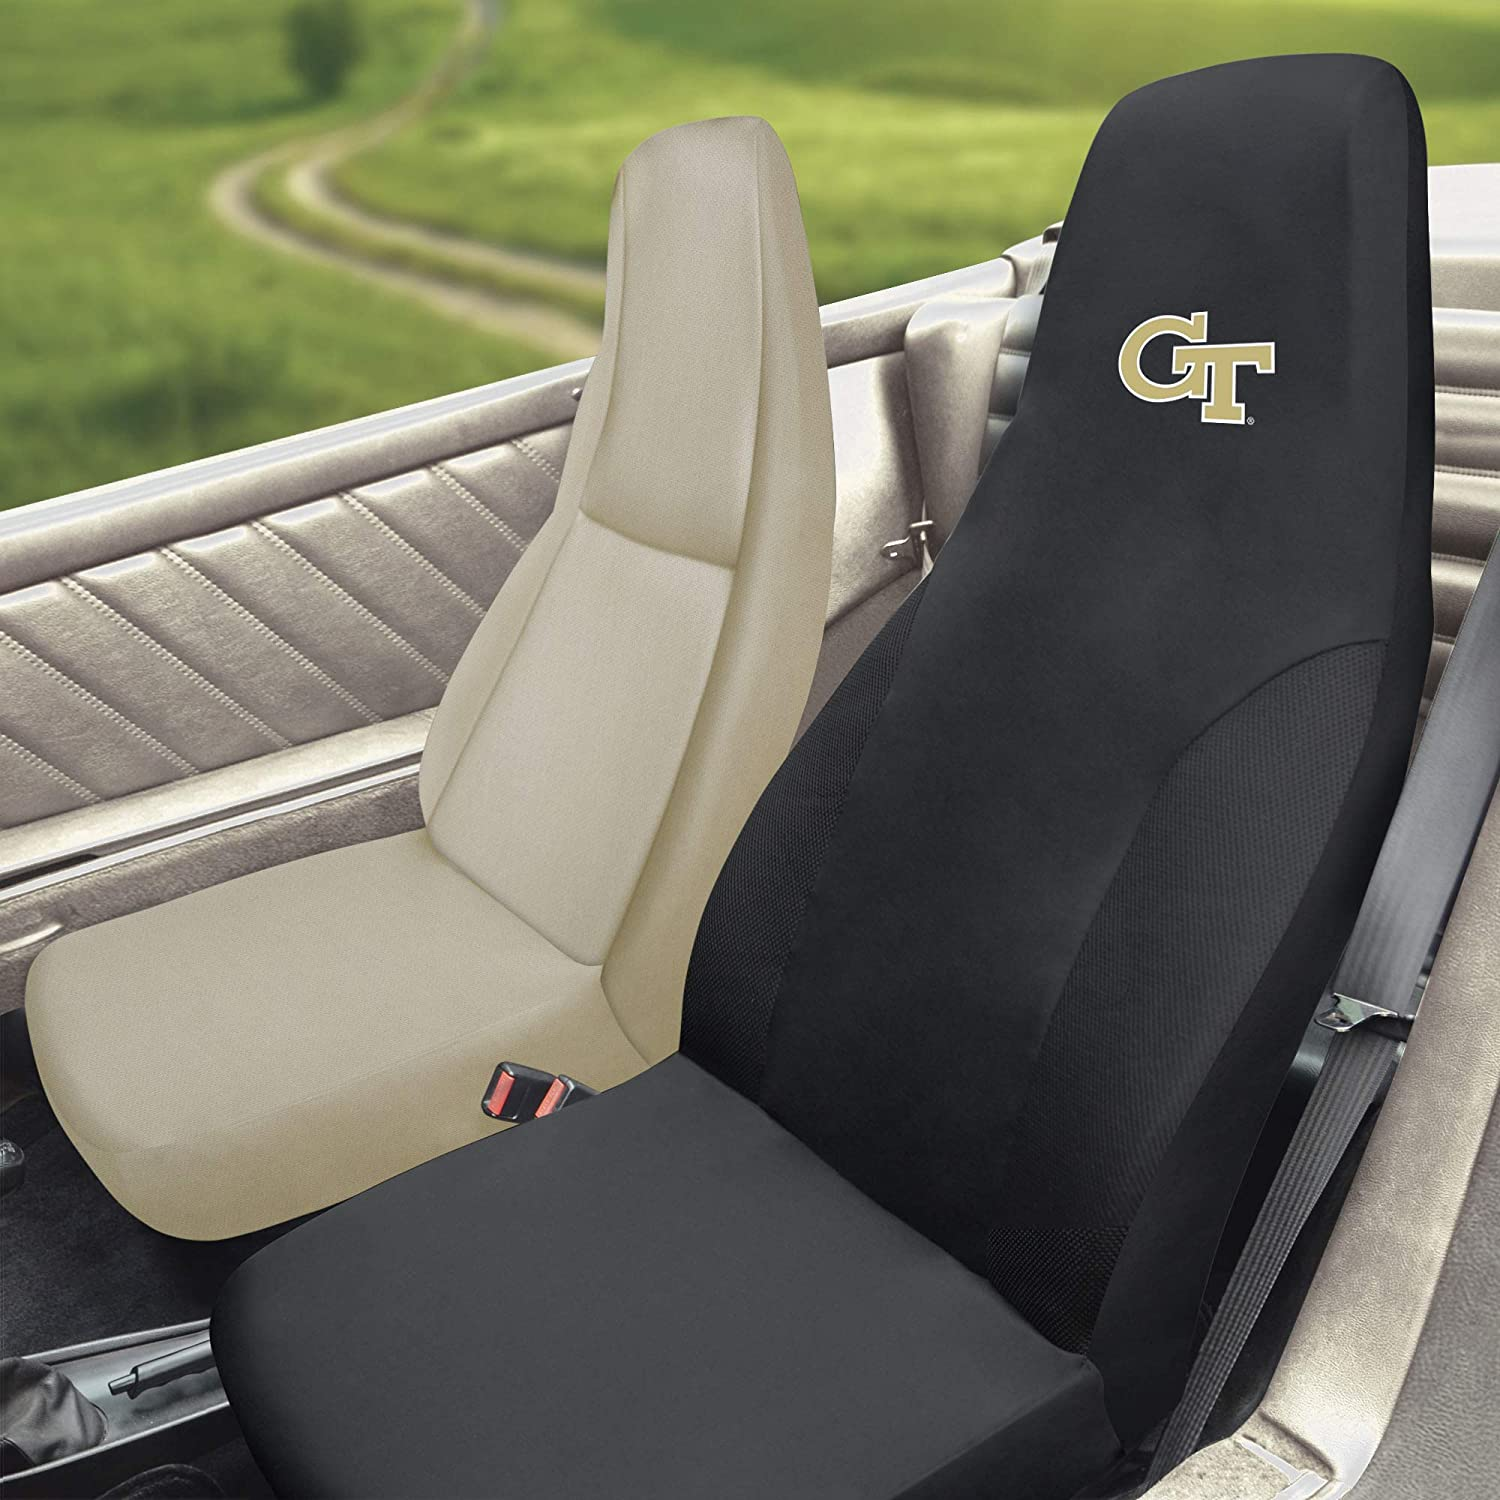 Team Colors One Sized FANMATS NCAA Georgia Tech Seat Coverseat Cover